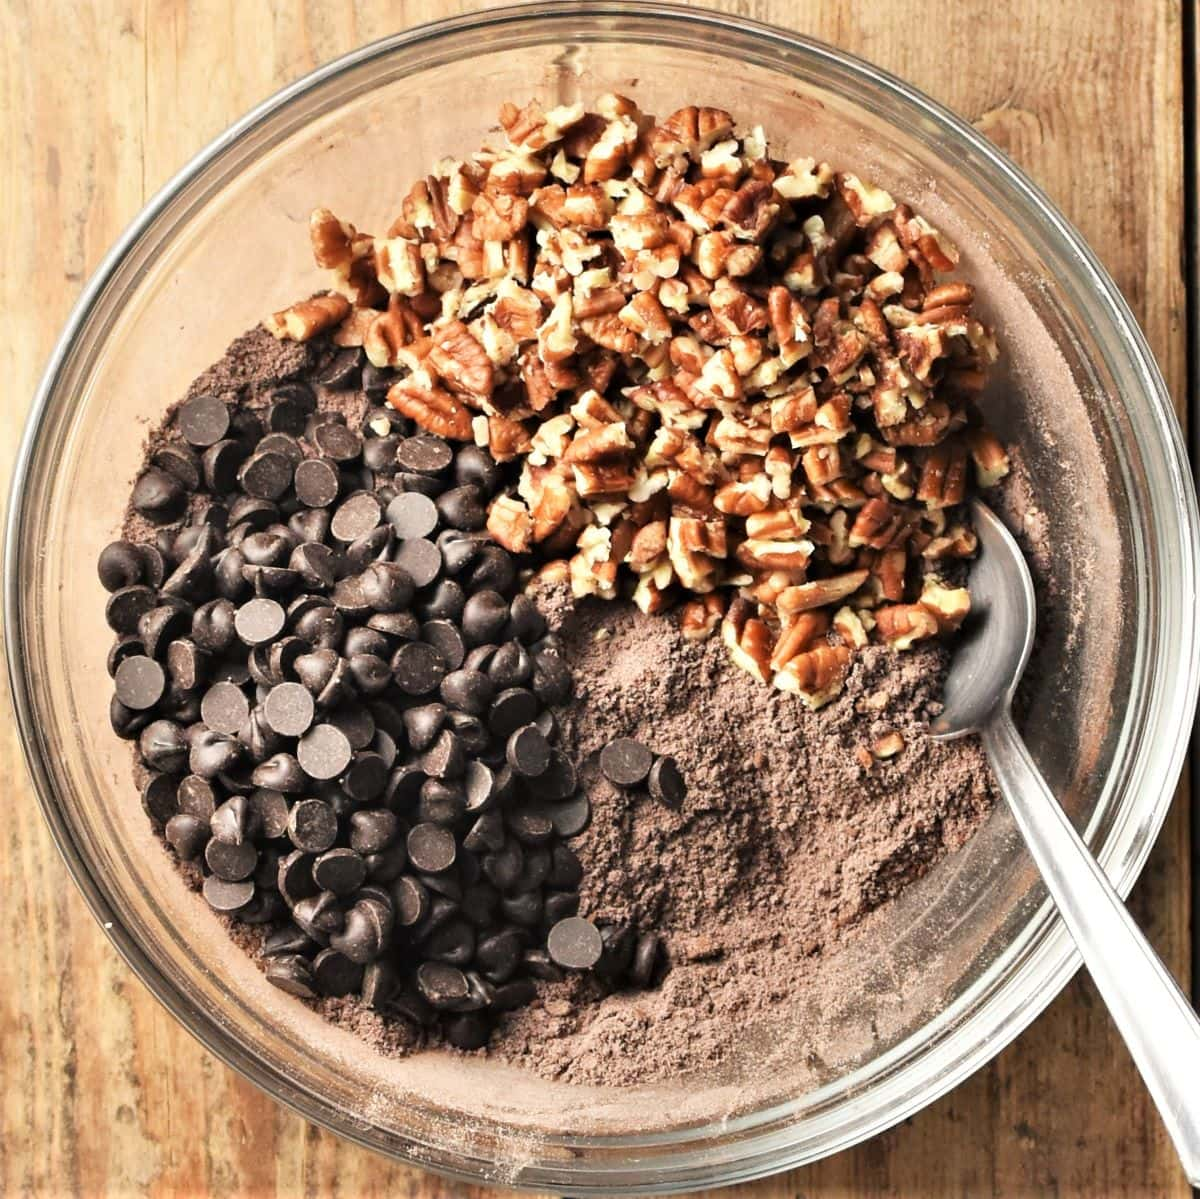 Cocoa mixture with chocolate chips and chopped pecans in mixing bowl with spoon.